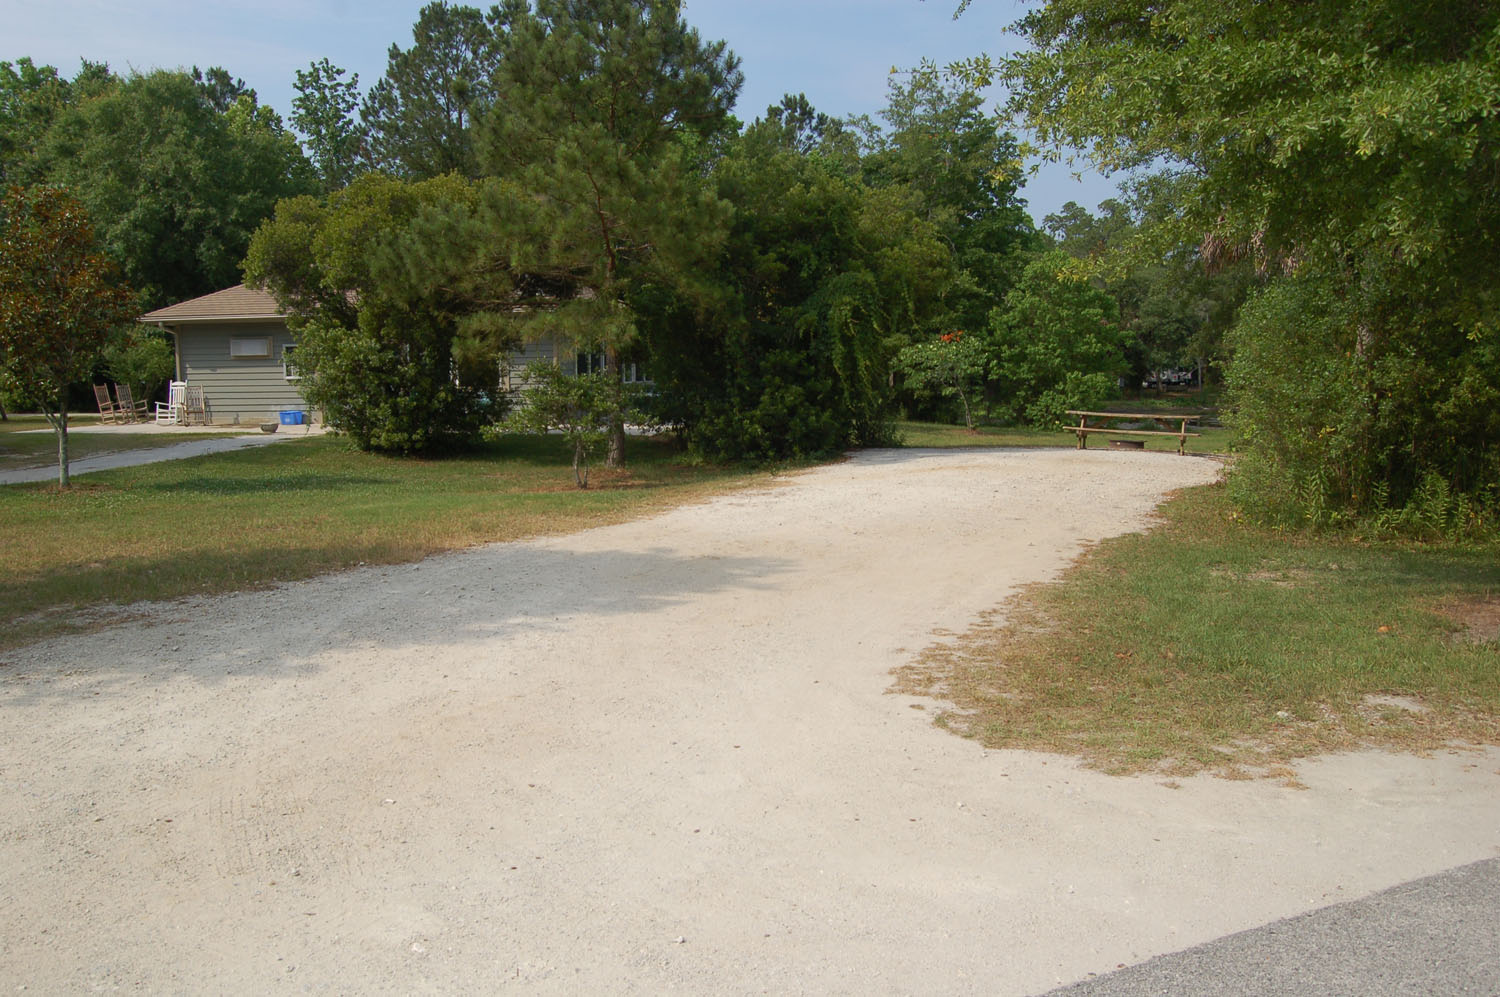 Image of campsite #38 at the Campground at James Island County Park